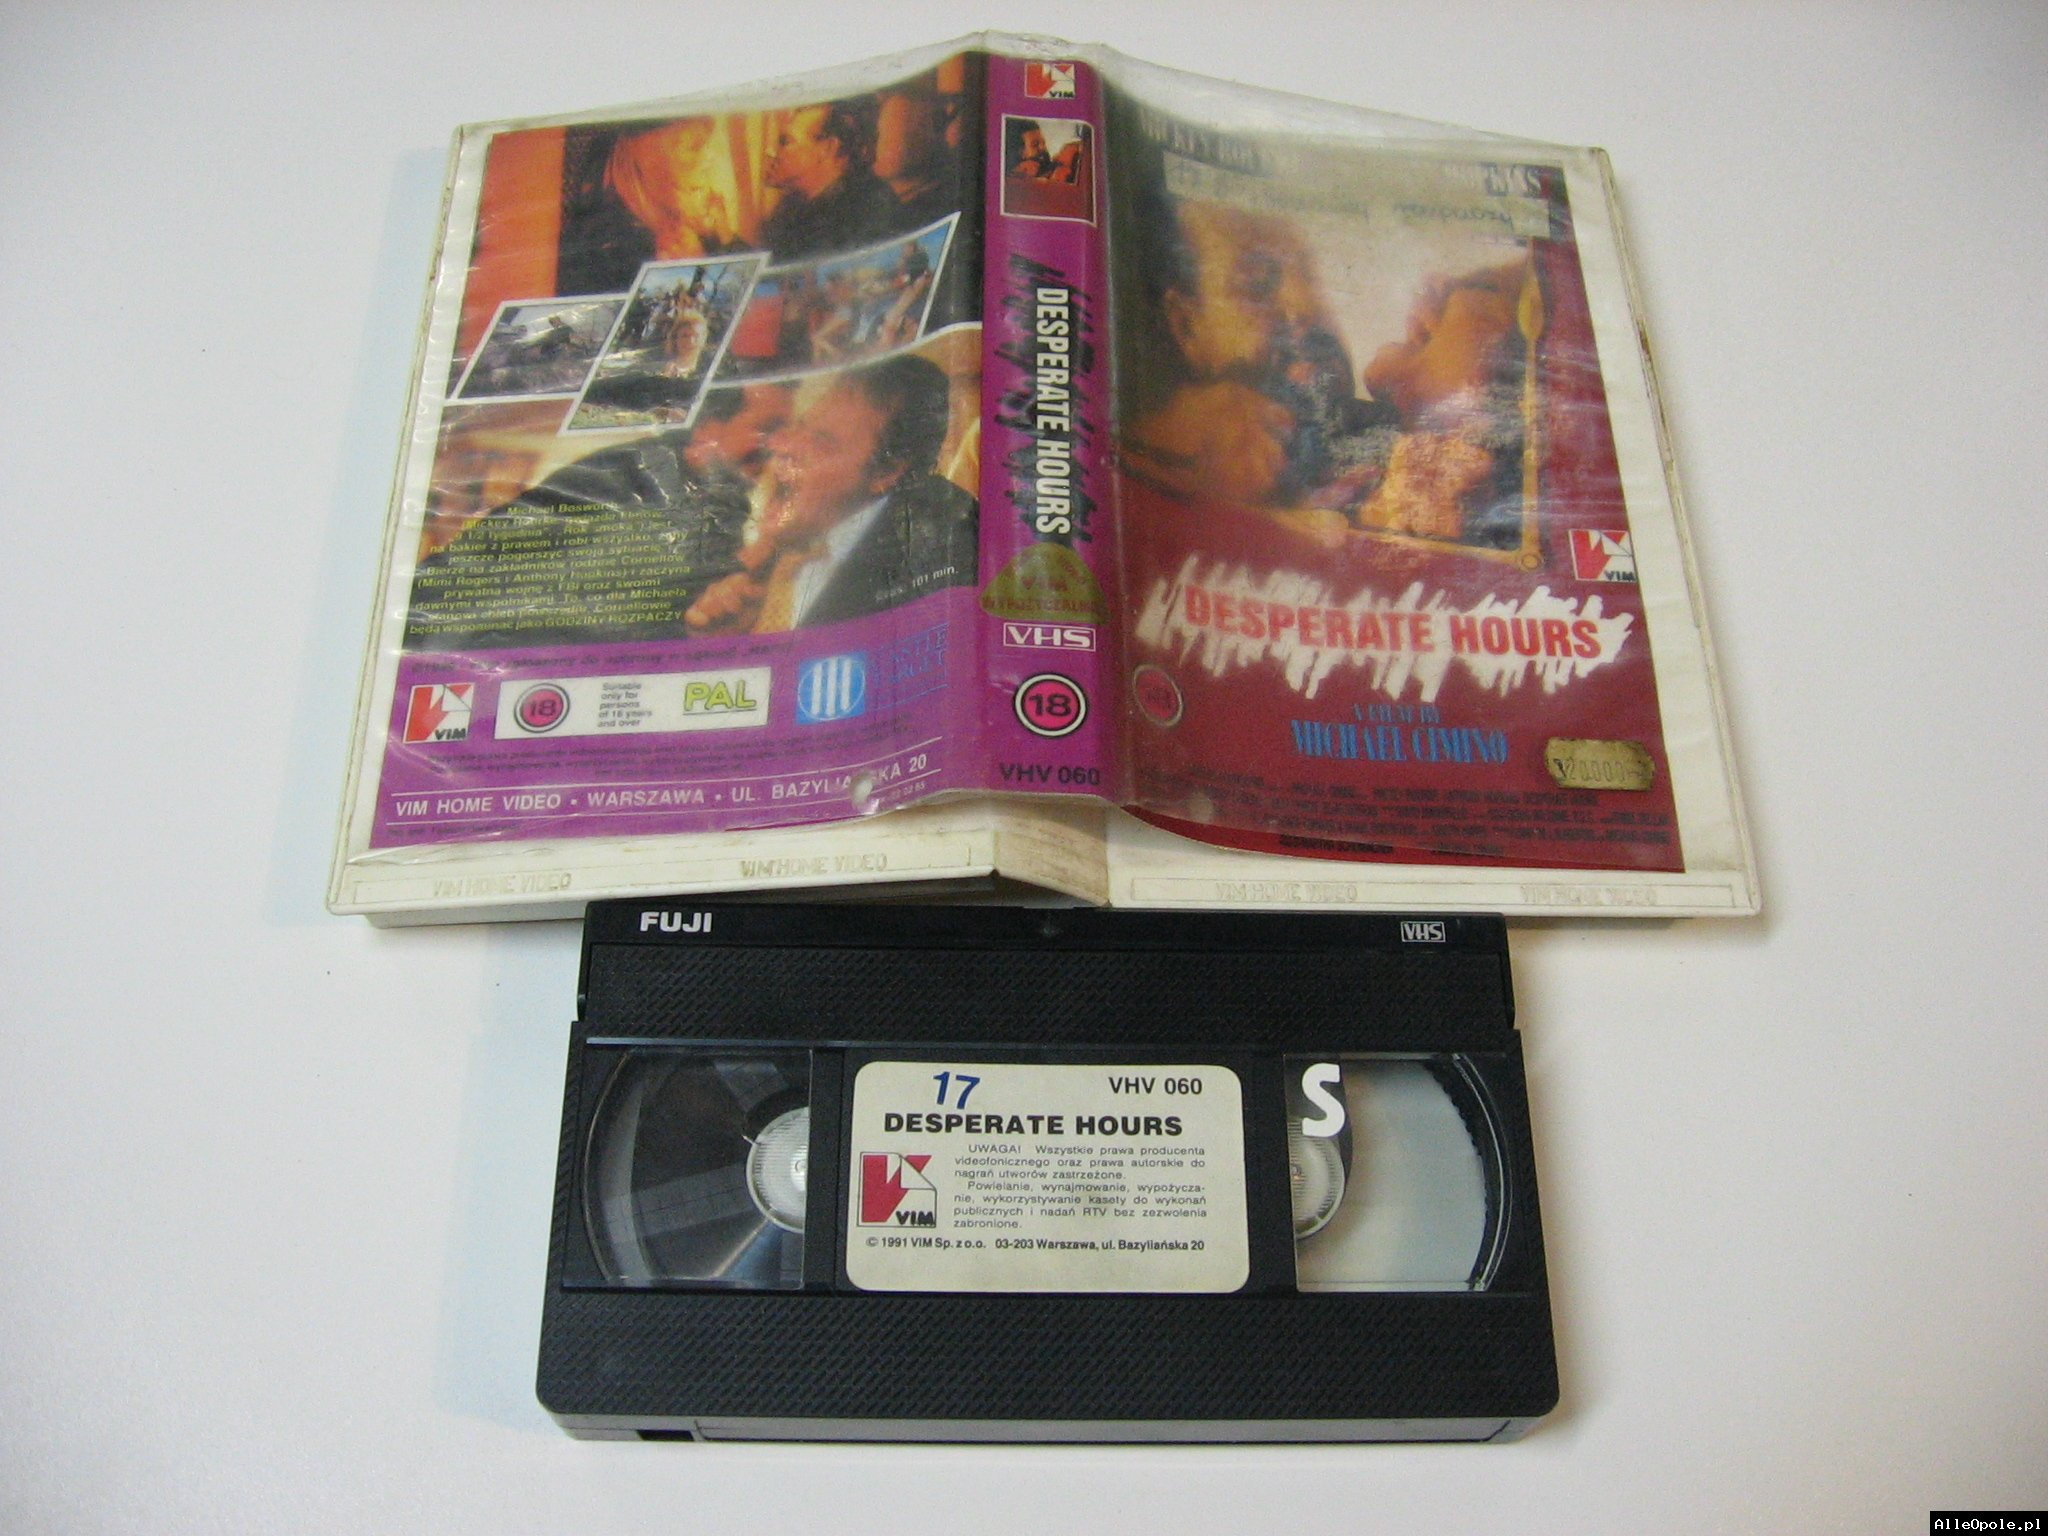 DESPERATE HOURS - VHS Kaseta Video - Opole 1751